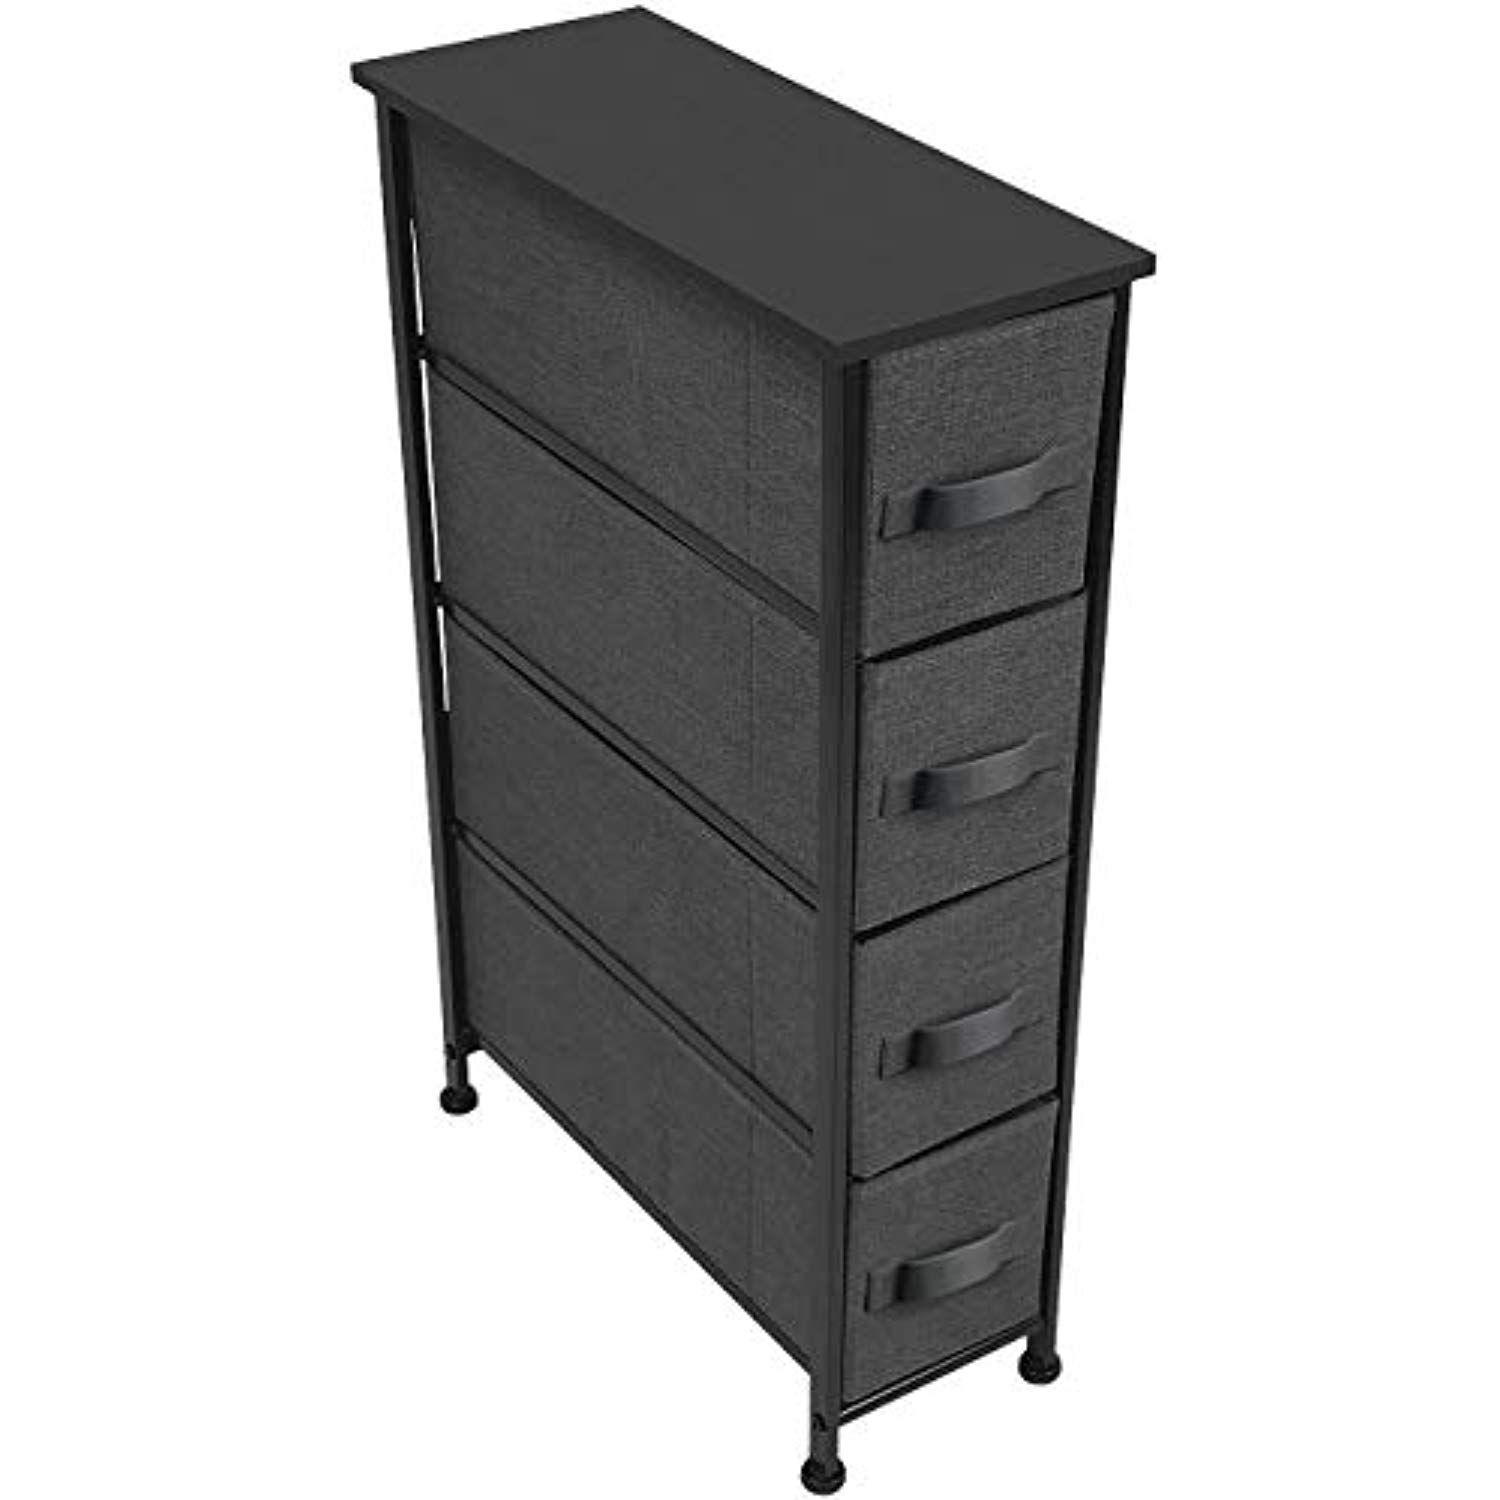 Sorbus Narrow Dresser Tower With 4 Drawers Vertical Storage For Bedroom Bathroom Laundry Closets And More Steel Drawers Fabric Drawers Chest Of Drawers